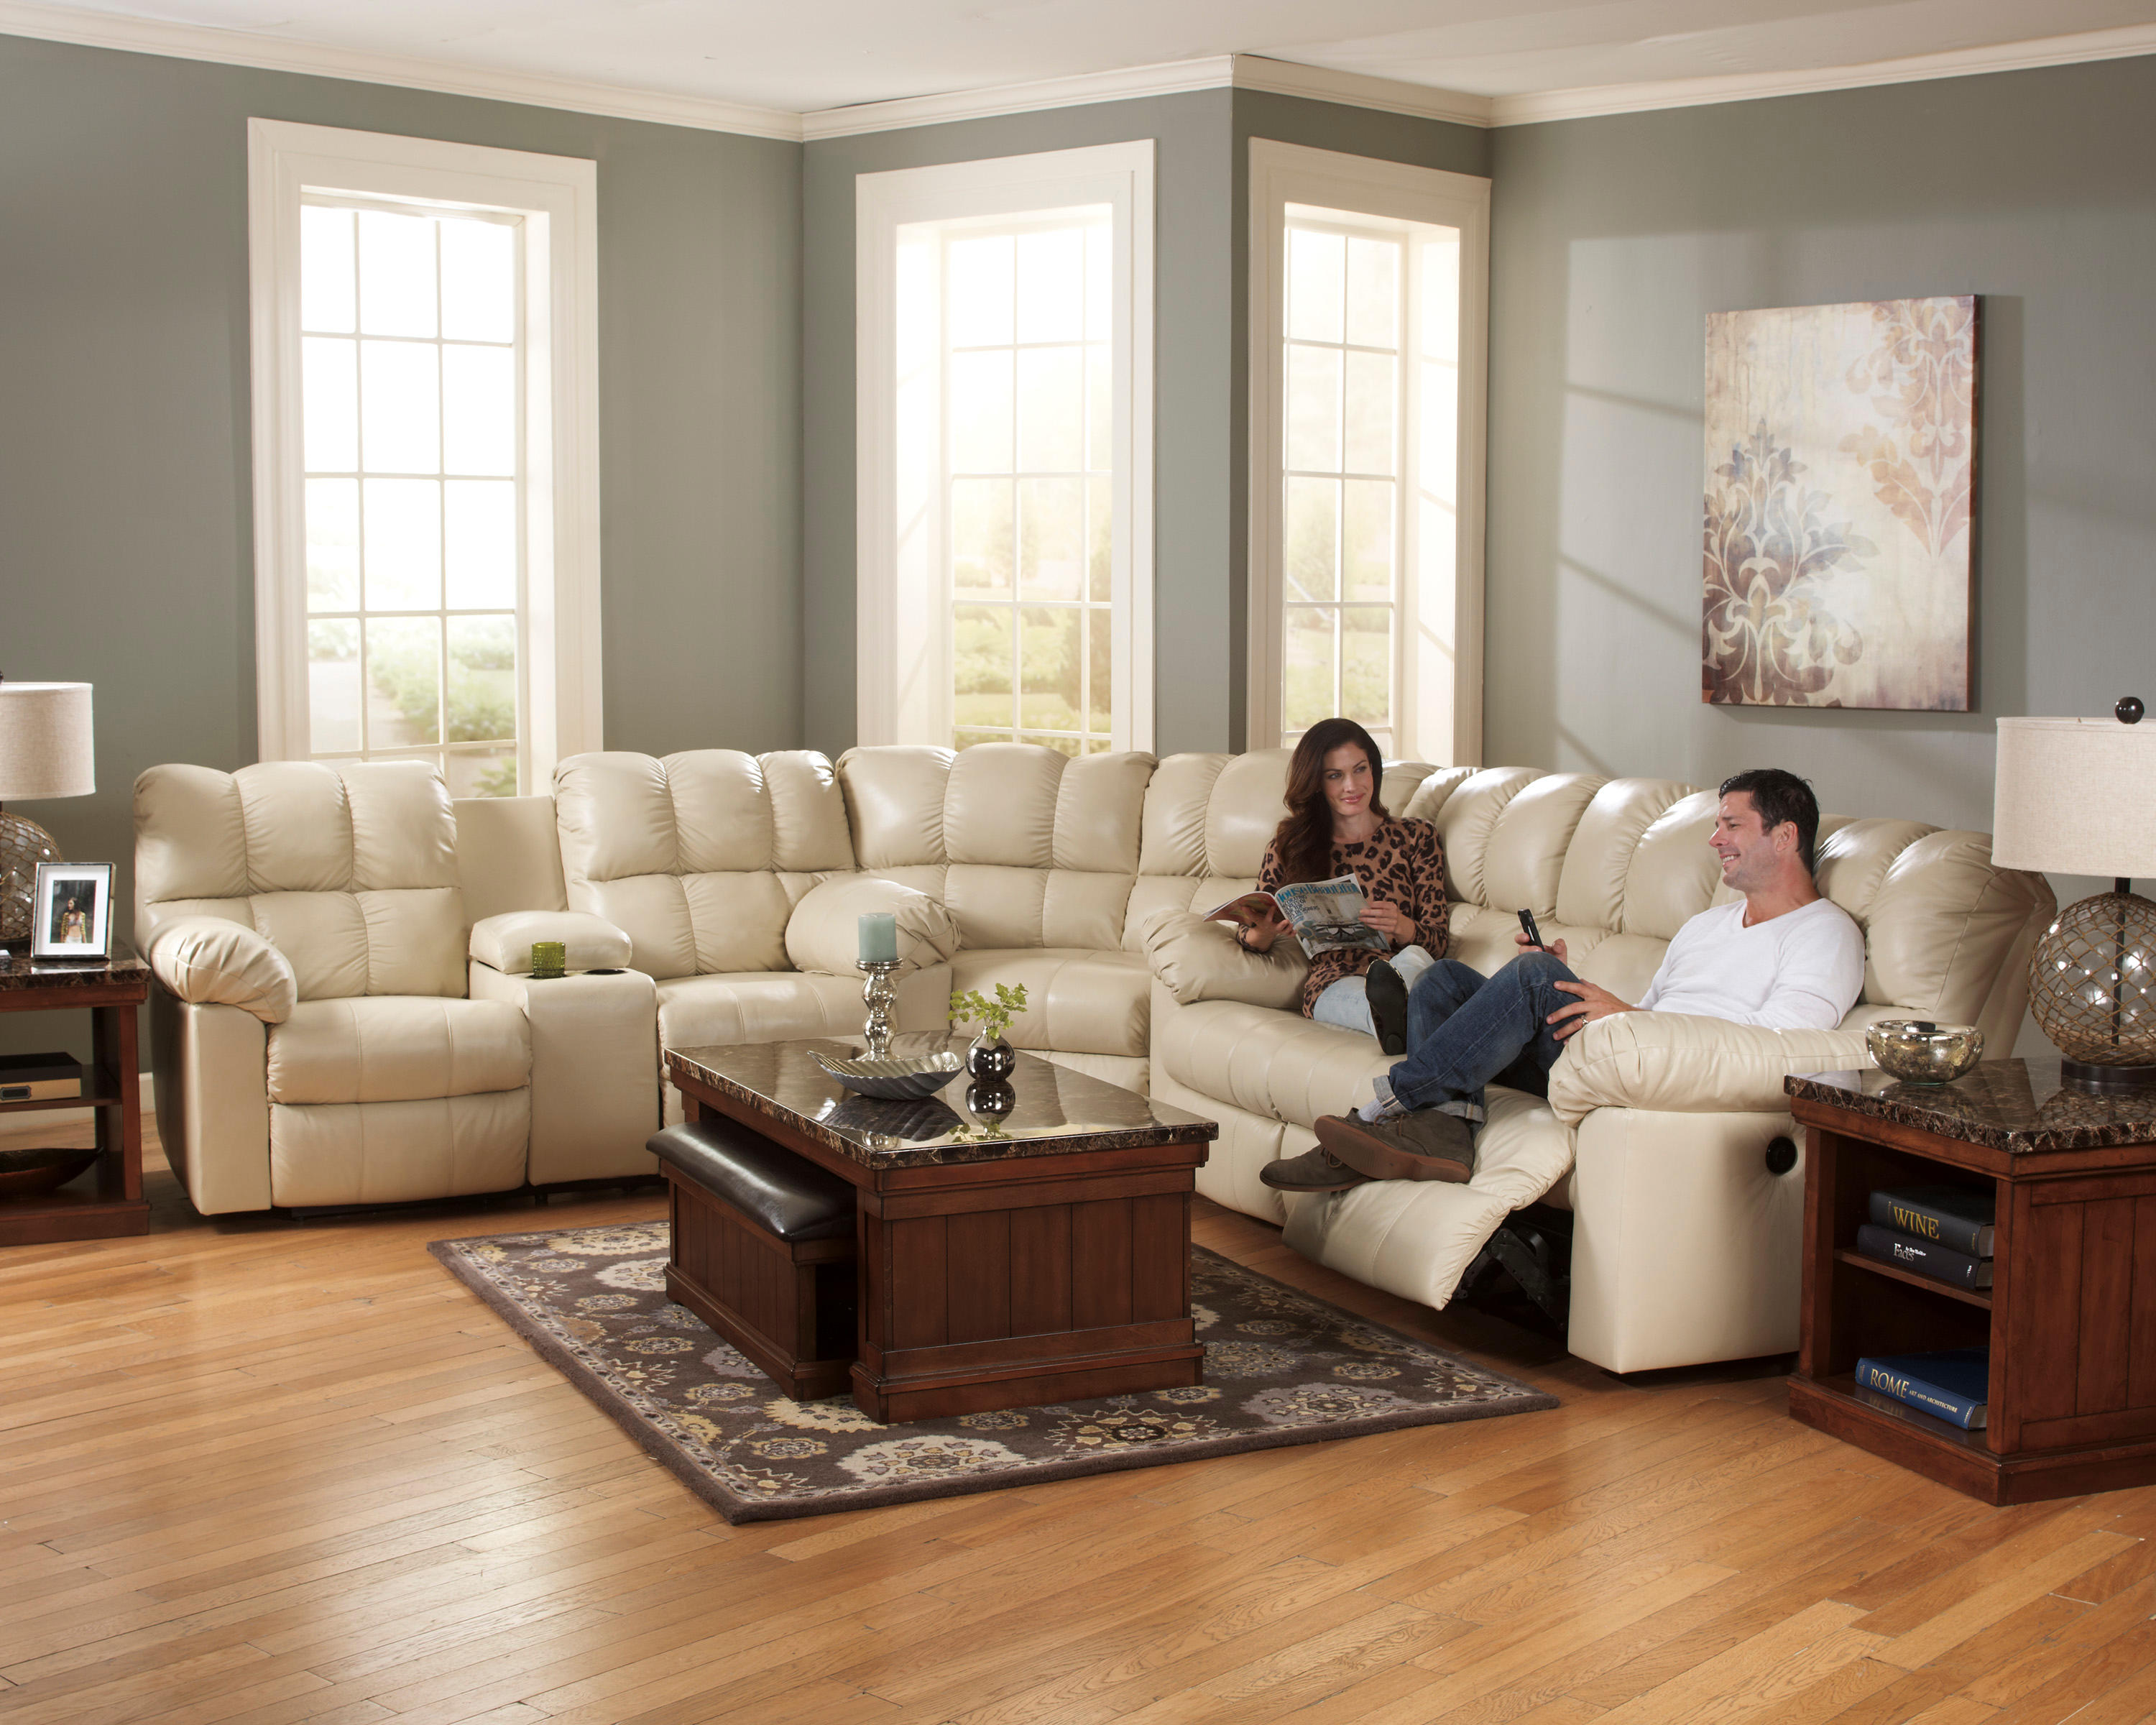 Mattress and Furniture Discount Warehouse image 14